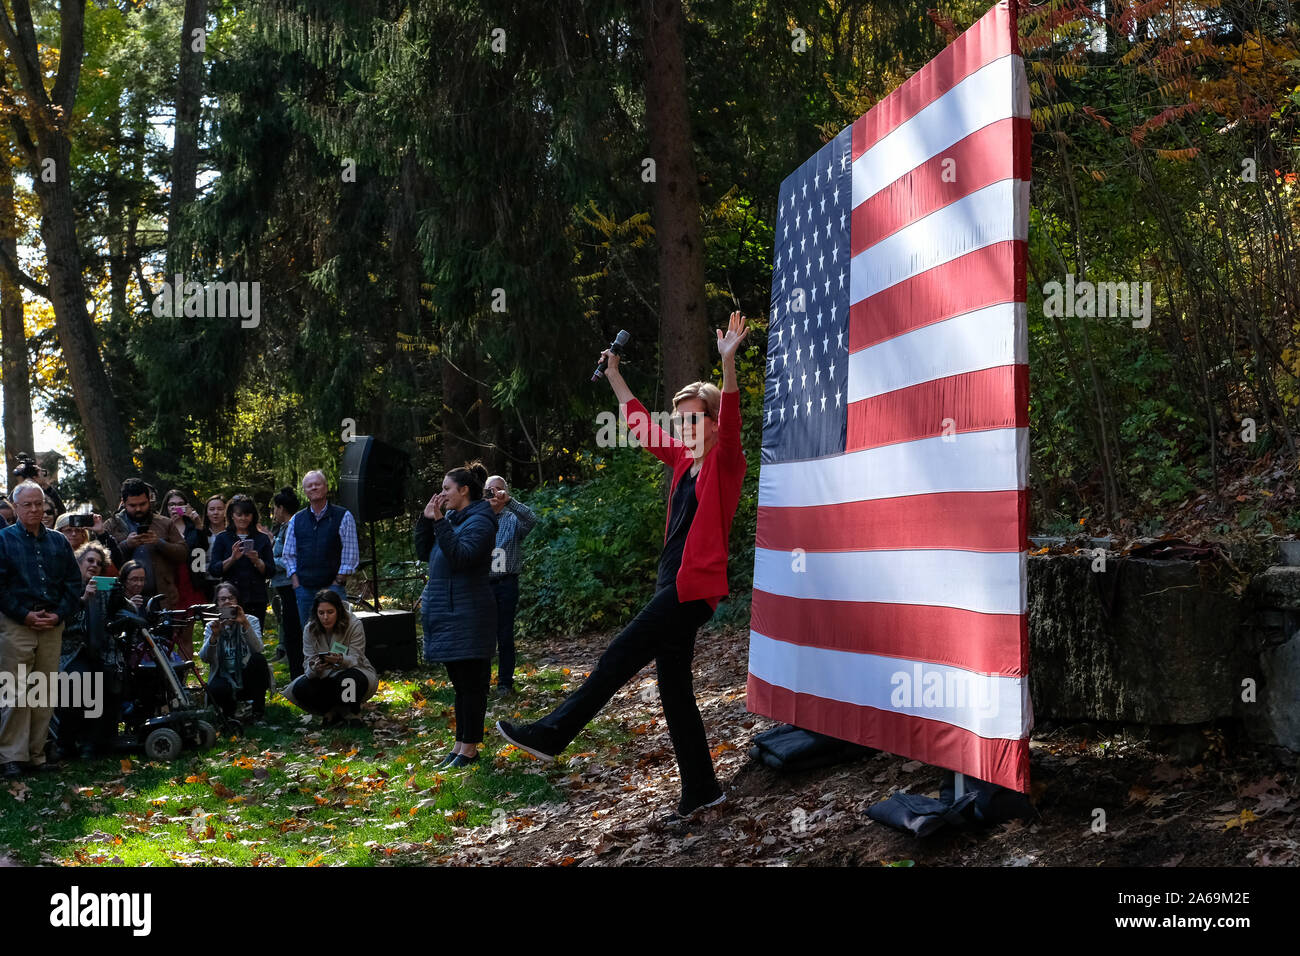 Hanover, United States. 24th Oct, 2019. Presidential candidate Elizabeth Warren campaigns at Dartmouth College in Hanover. Credit: SOPA Images Limited/Alamy Live News Stock Photo